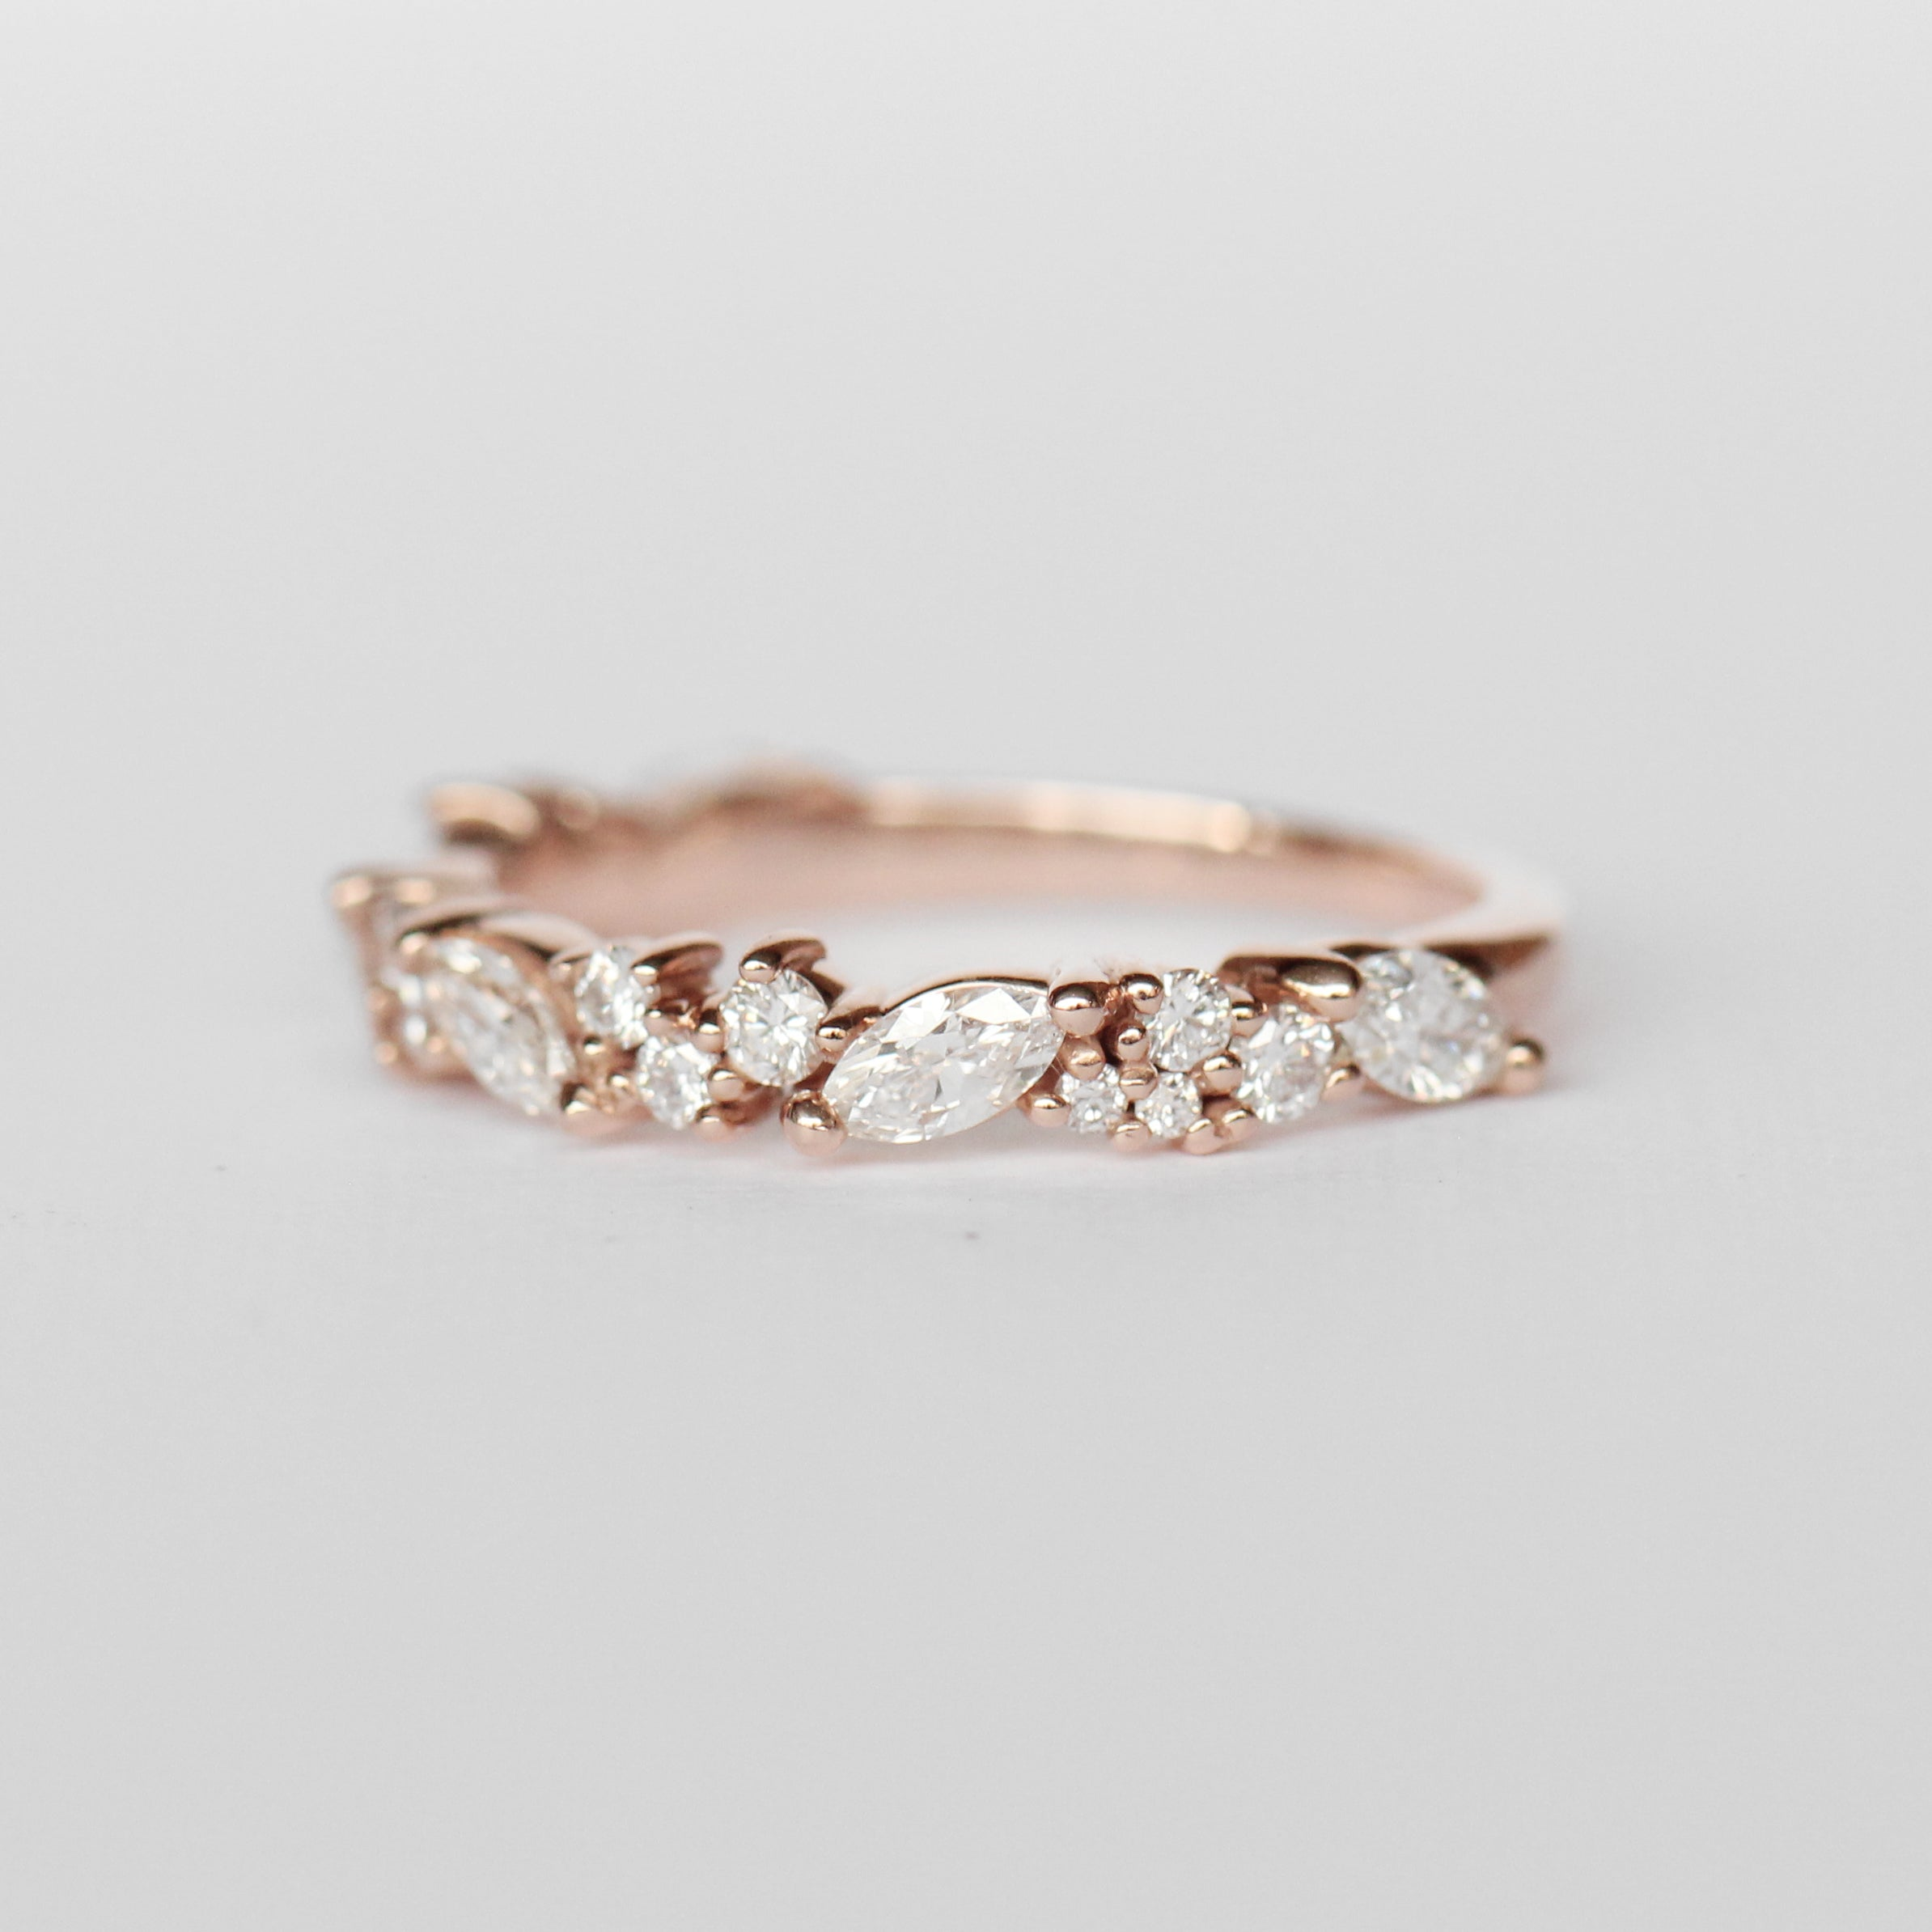 Genevieve Diamond Engagement Ring Band - White diamonds - Midwinter Co. Alternative Bridal Rings and Modern Fine Jewelry